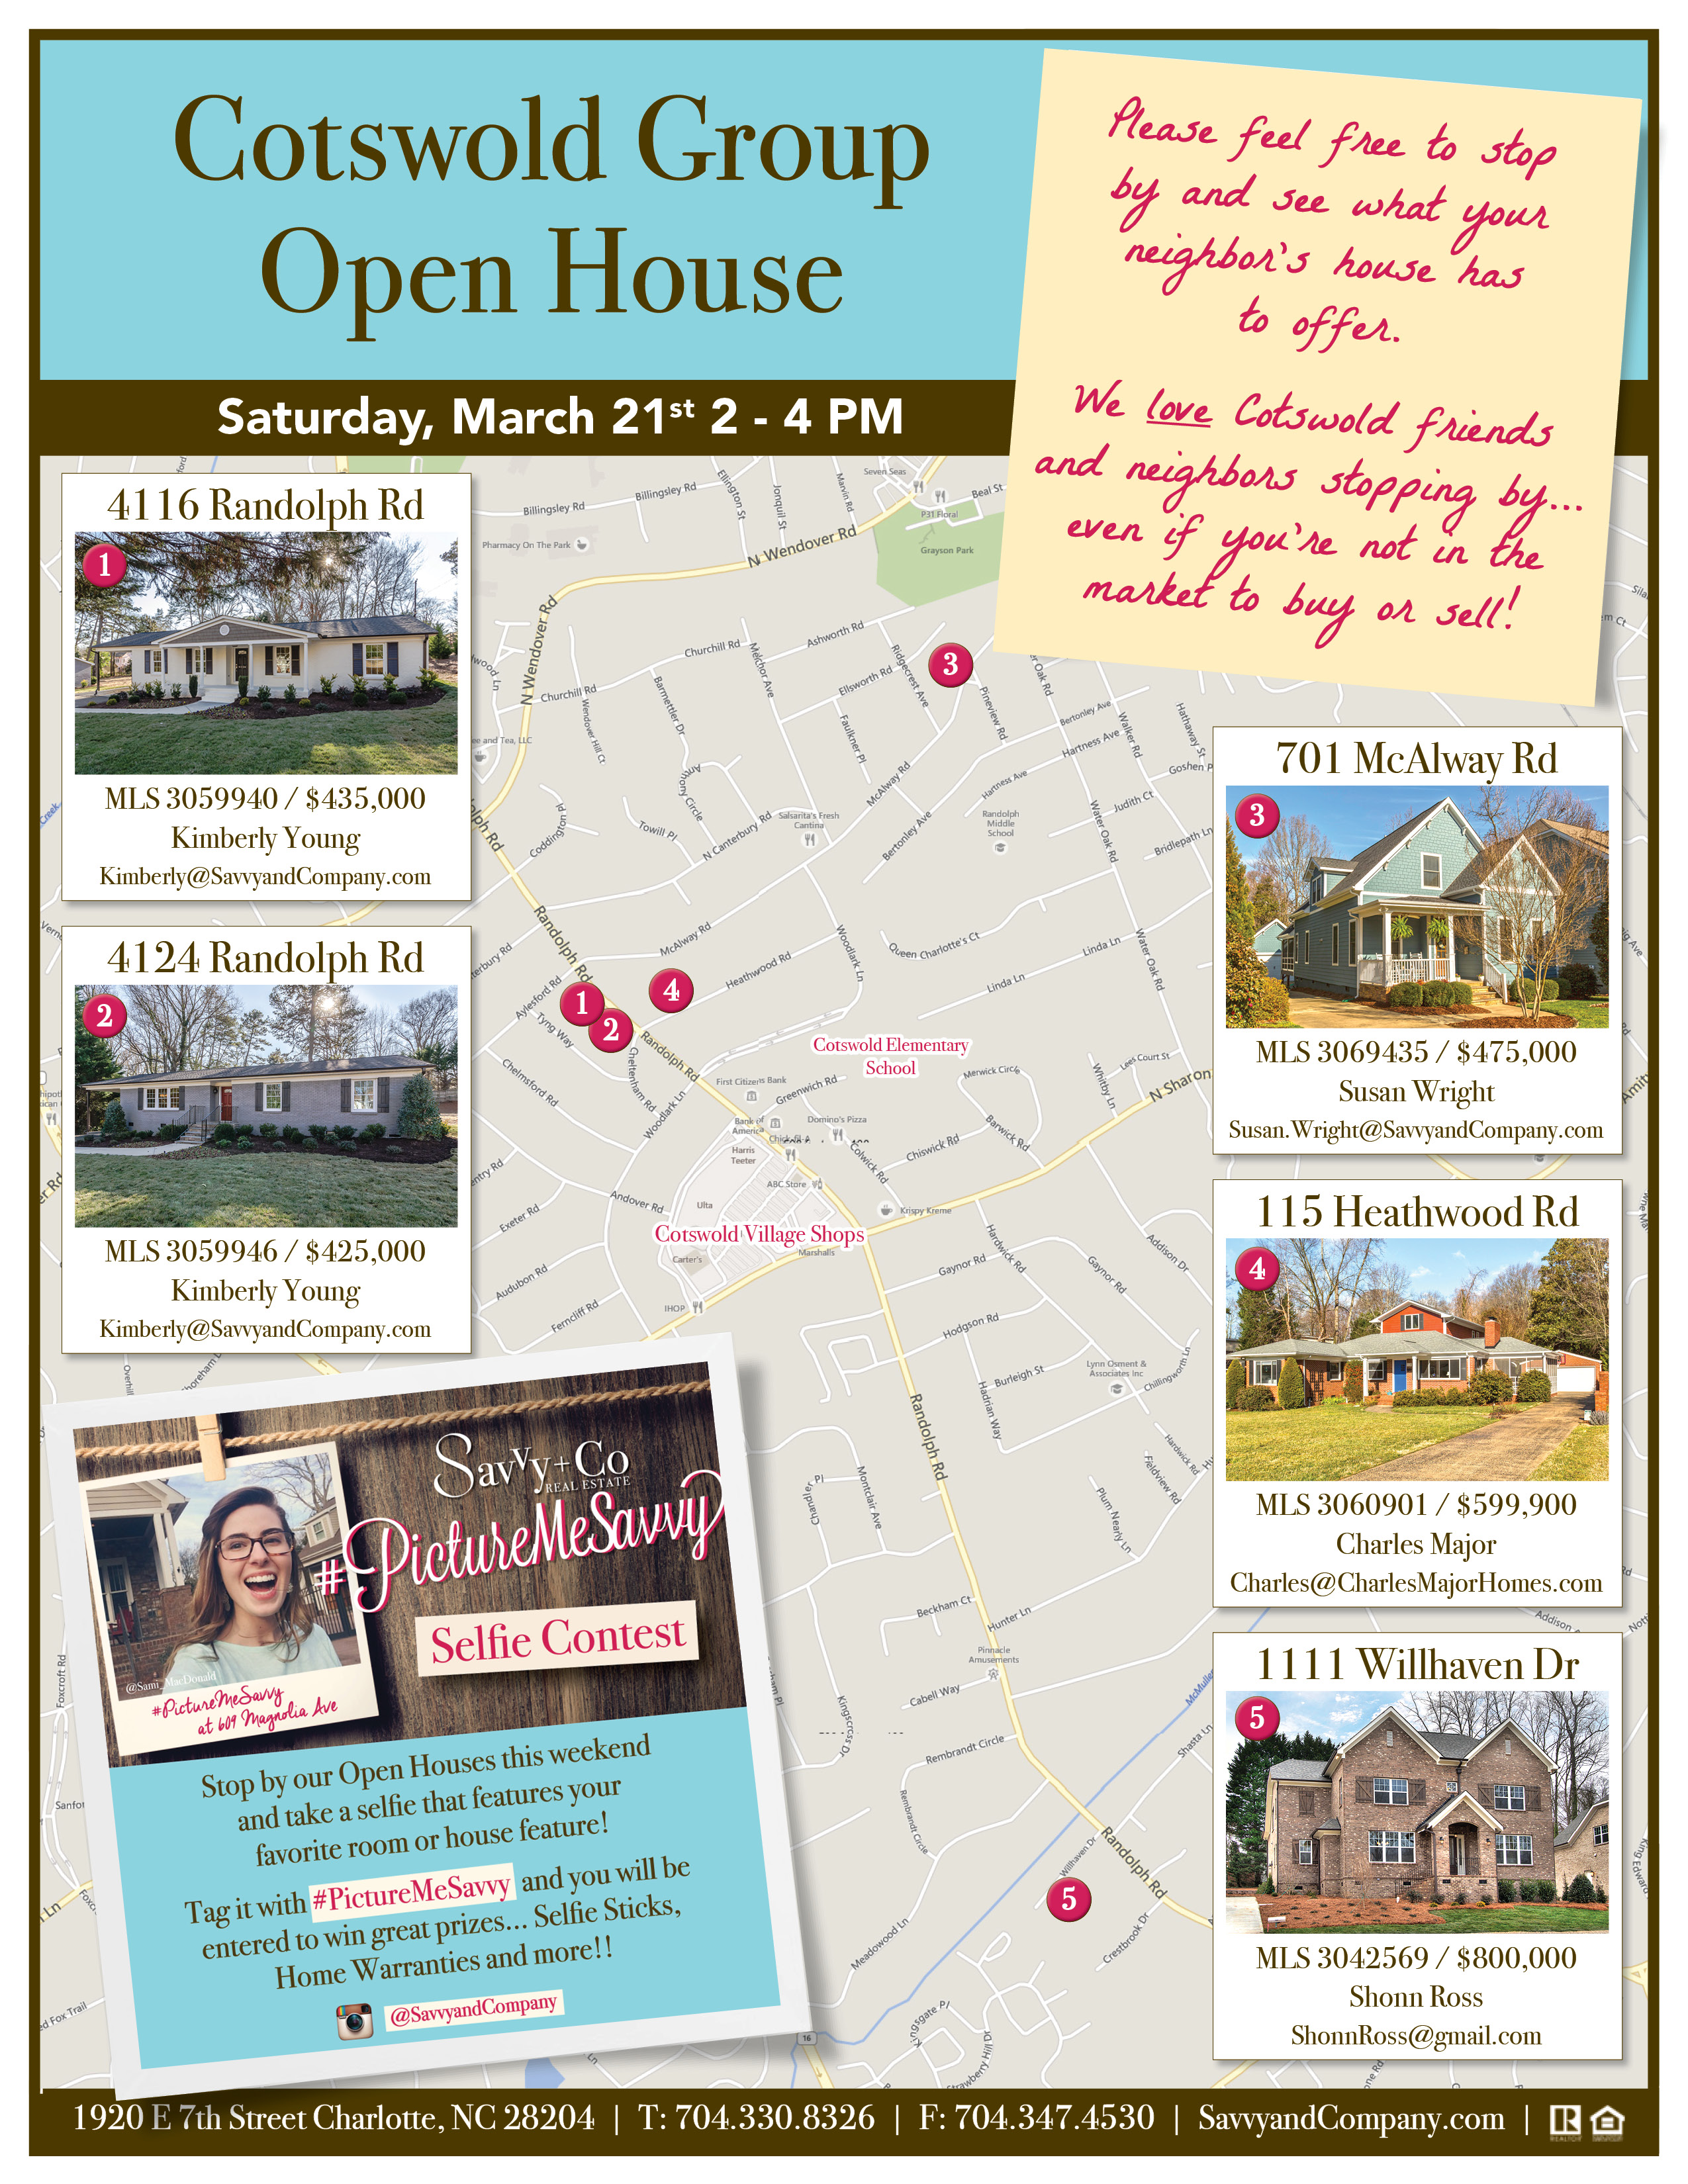 Flyer_Open House_Shonn Ross_1111 Willhaven Dr_Group Open House2